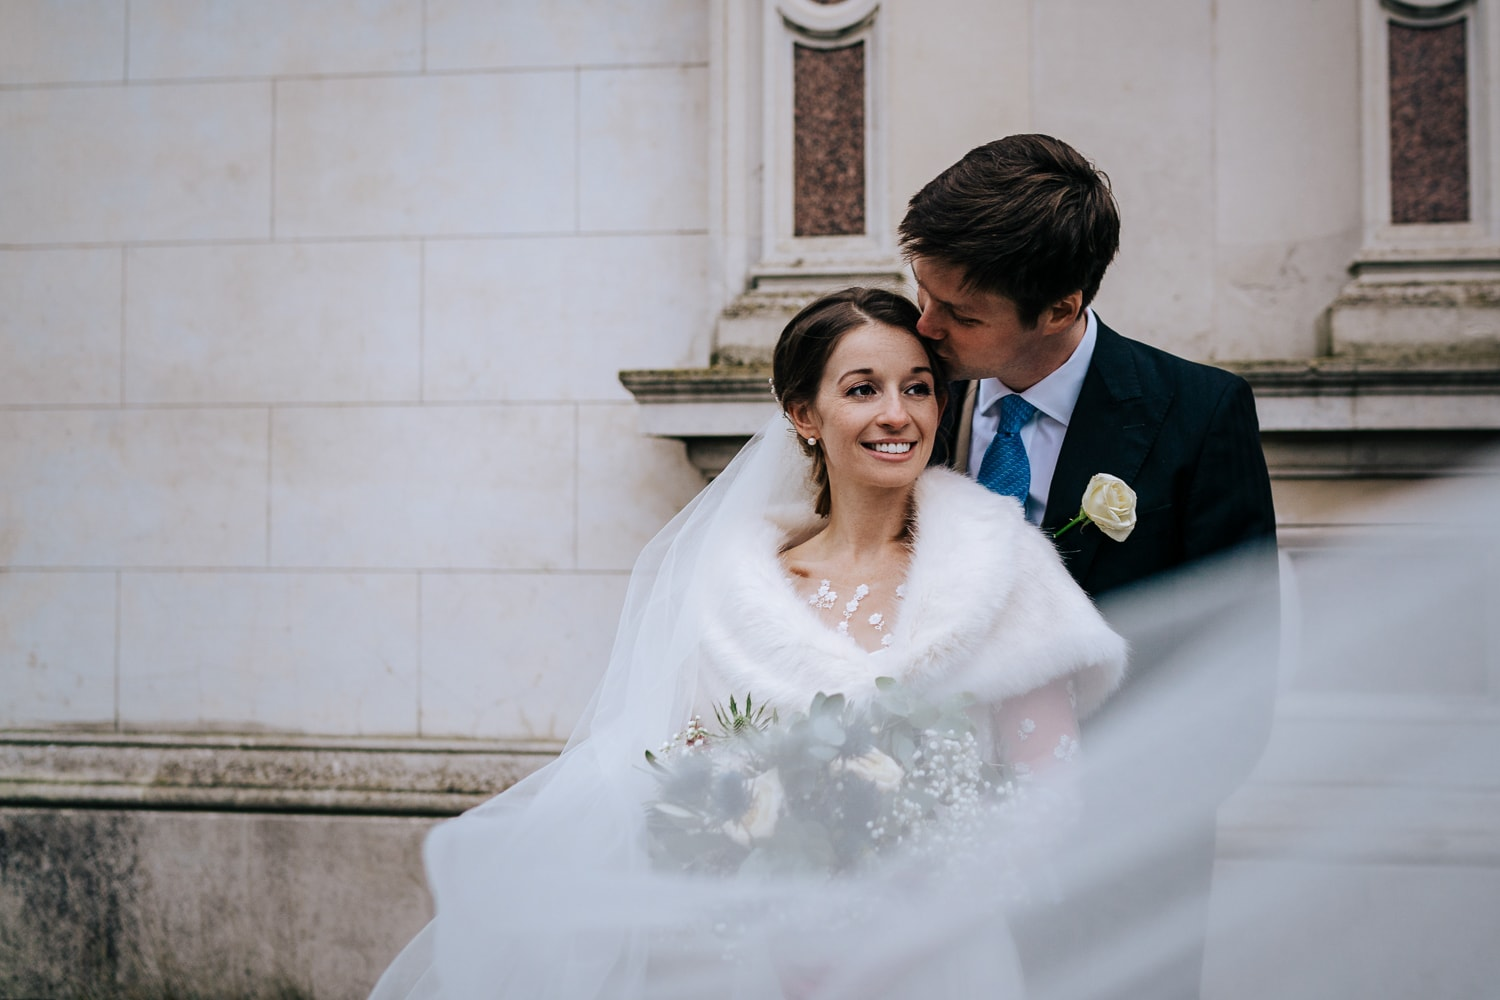 Stylish wedding portrait of bride and groom at Surrey wedding